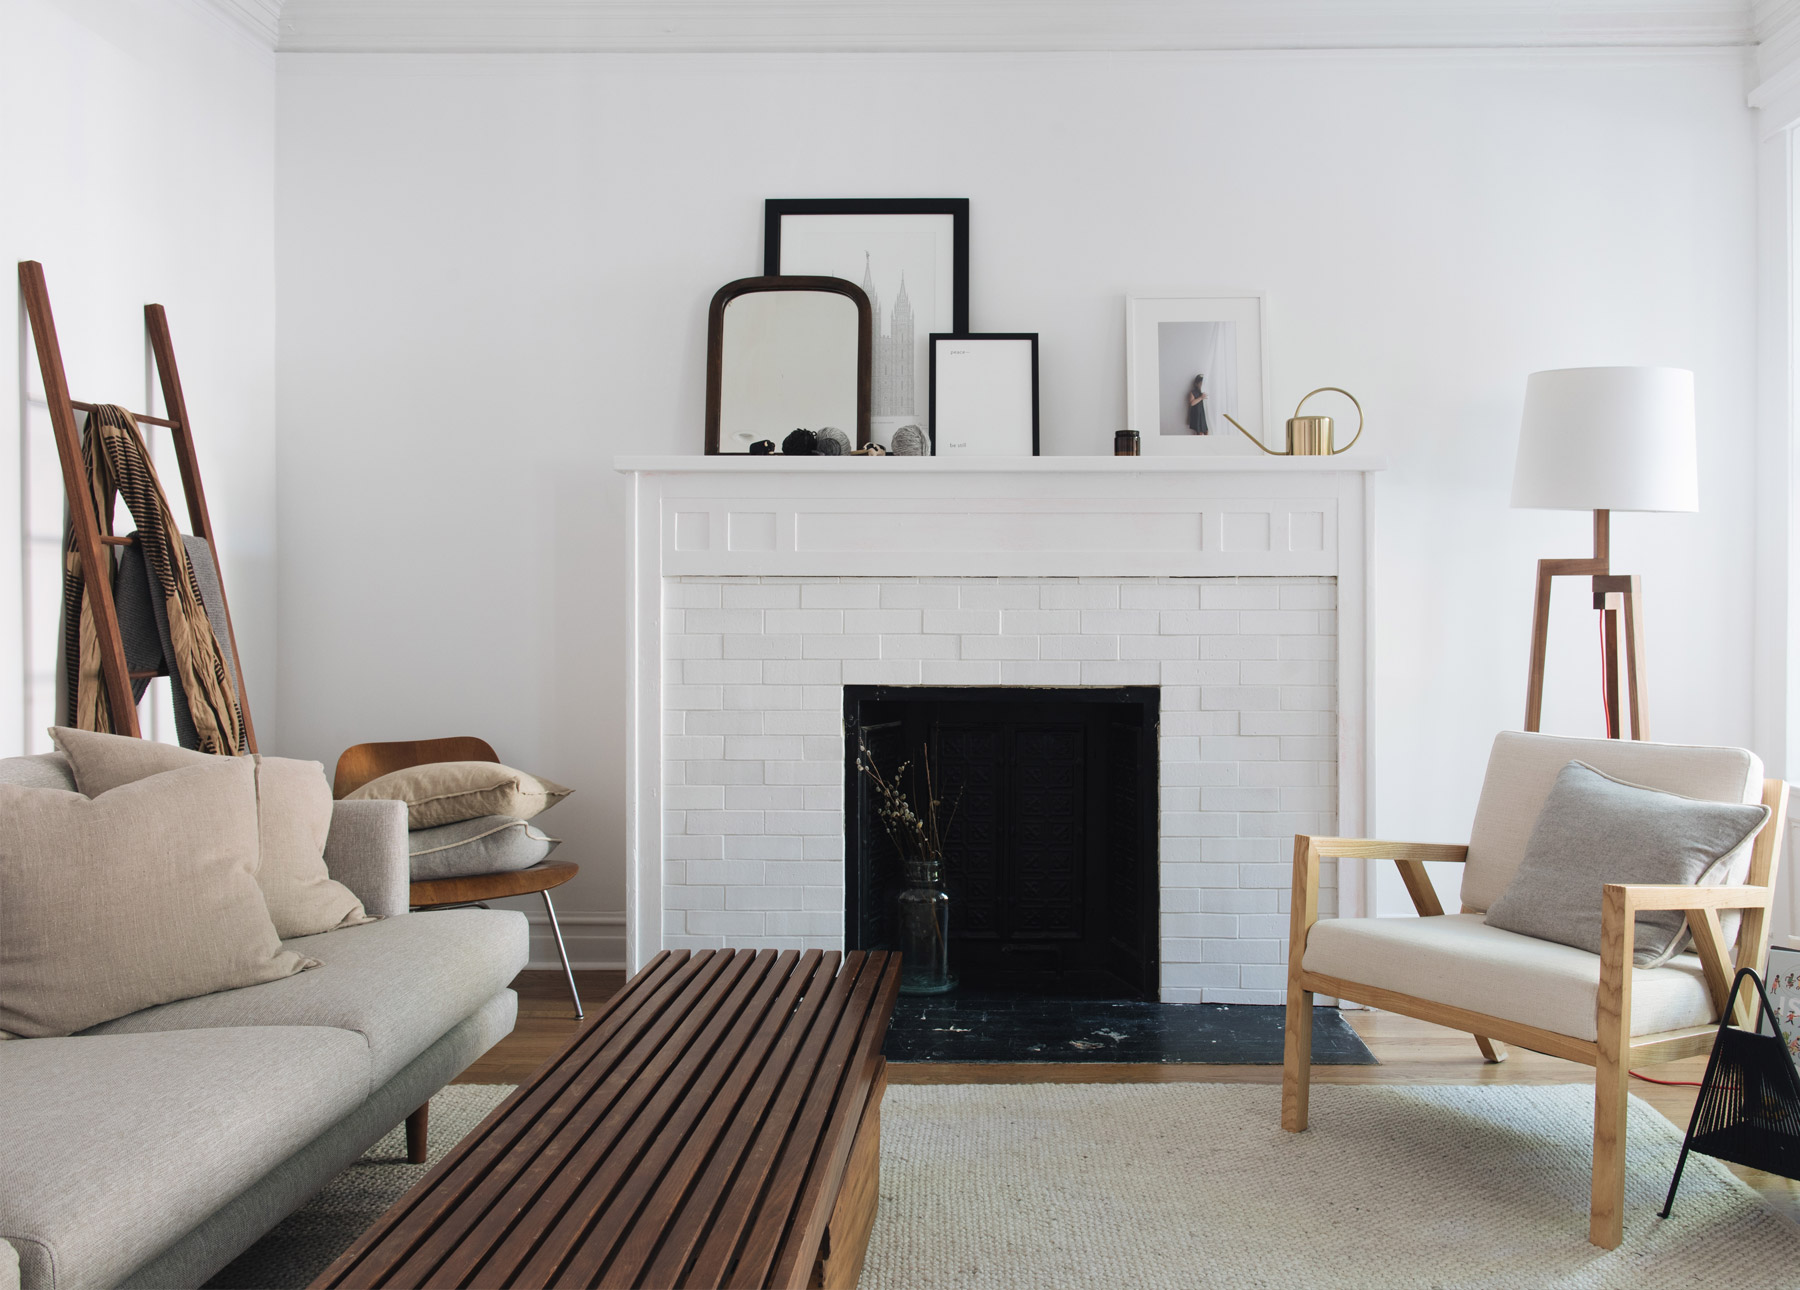 A white fireplace in a minimalist home.